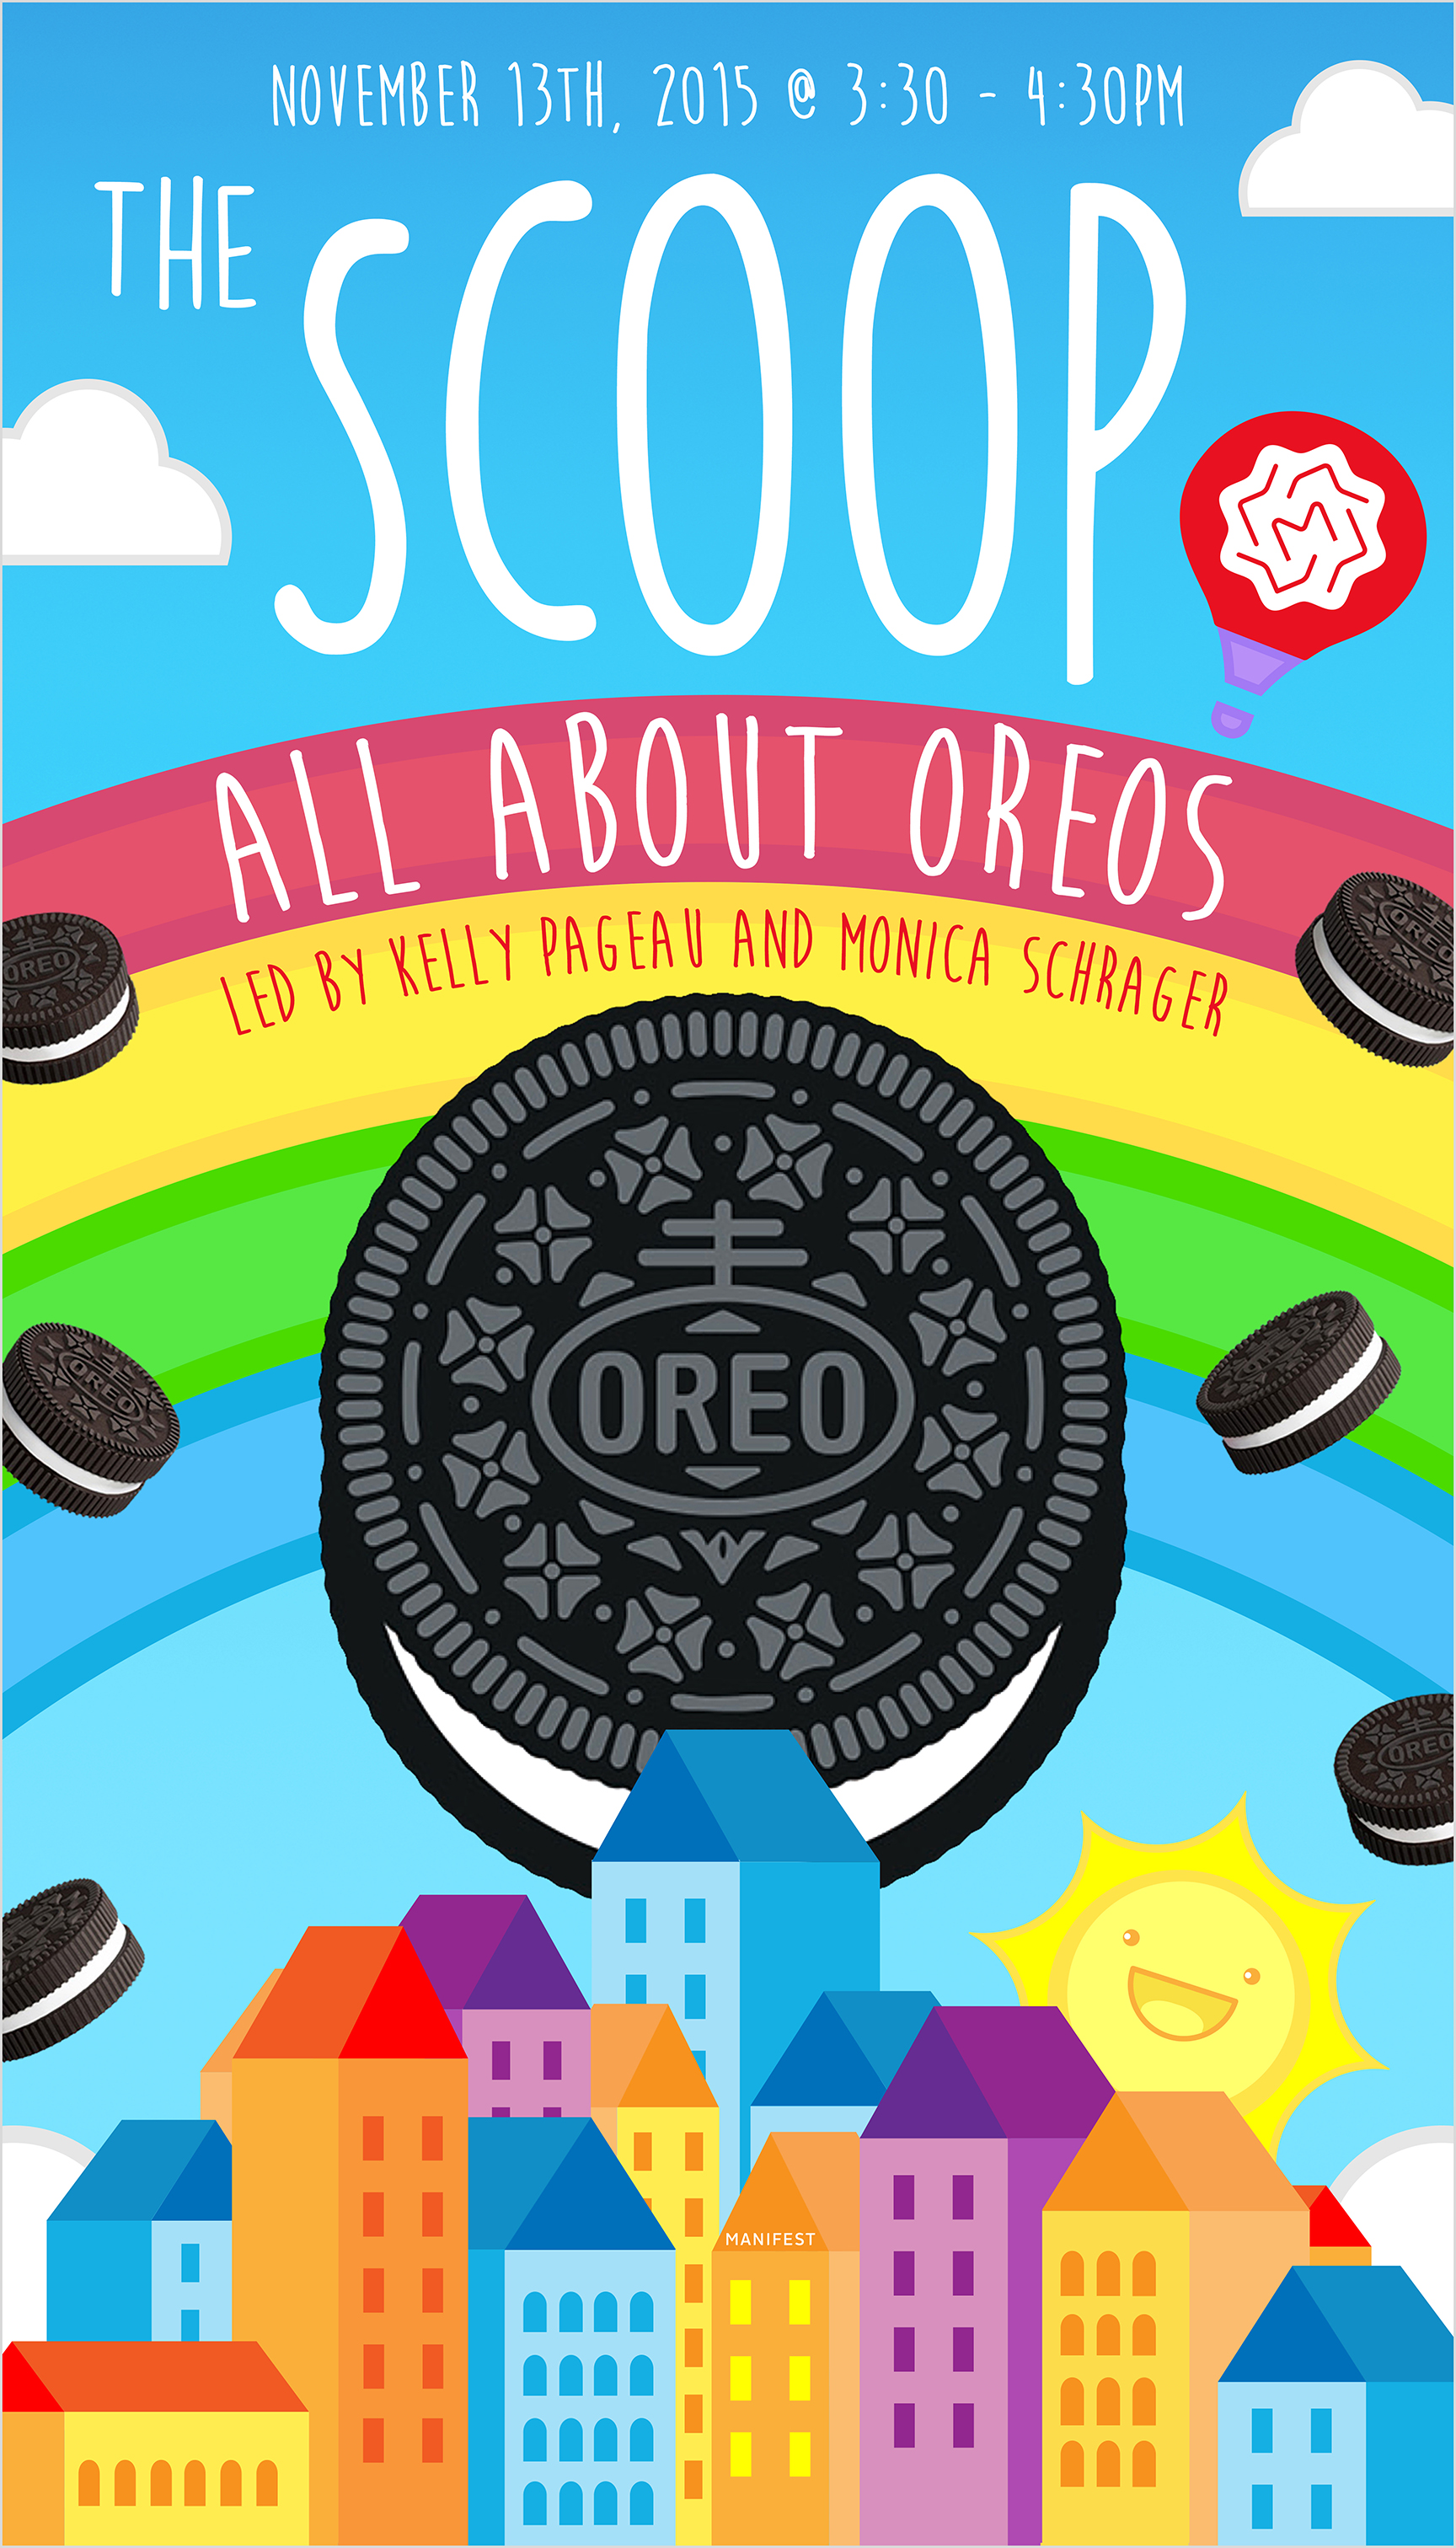 All About Oreos     Poster